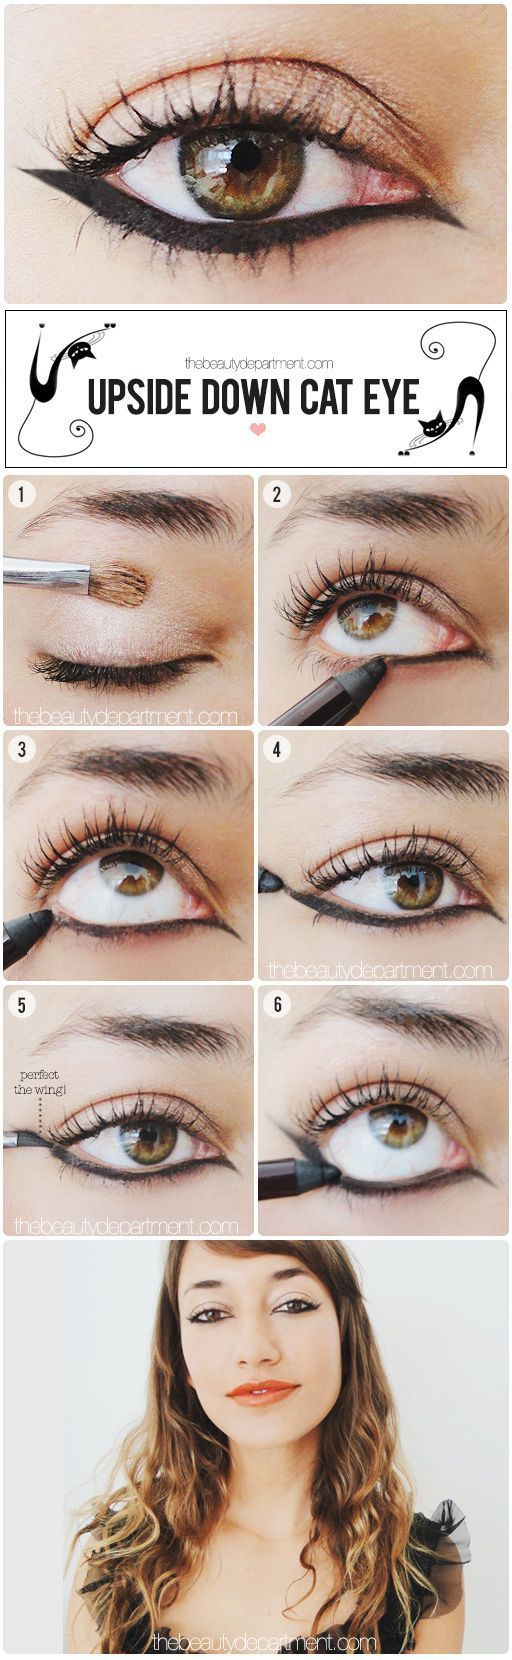 Motives Lustrafy Waterproof Mascara:A rich, hypoallergenic, waterproof formula that volumizes your lashes. The waterproof formula extends its wear to last all day and night, while resisting smudging and flaking. See details: www.shop.com/...